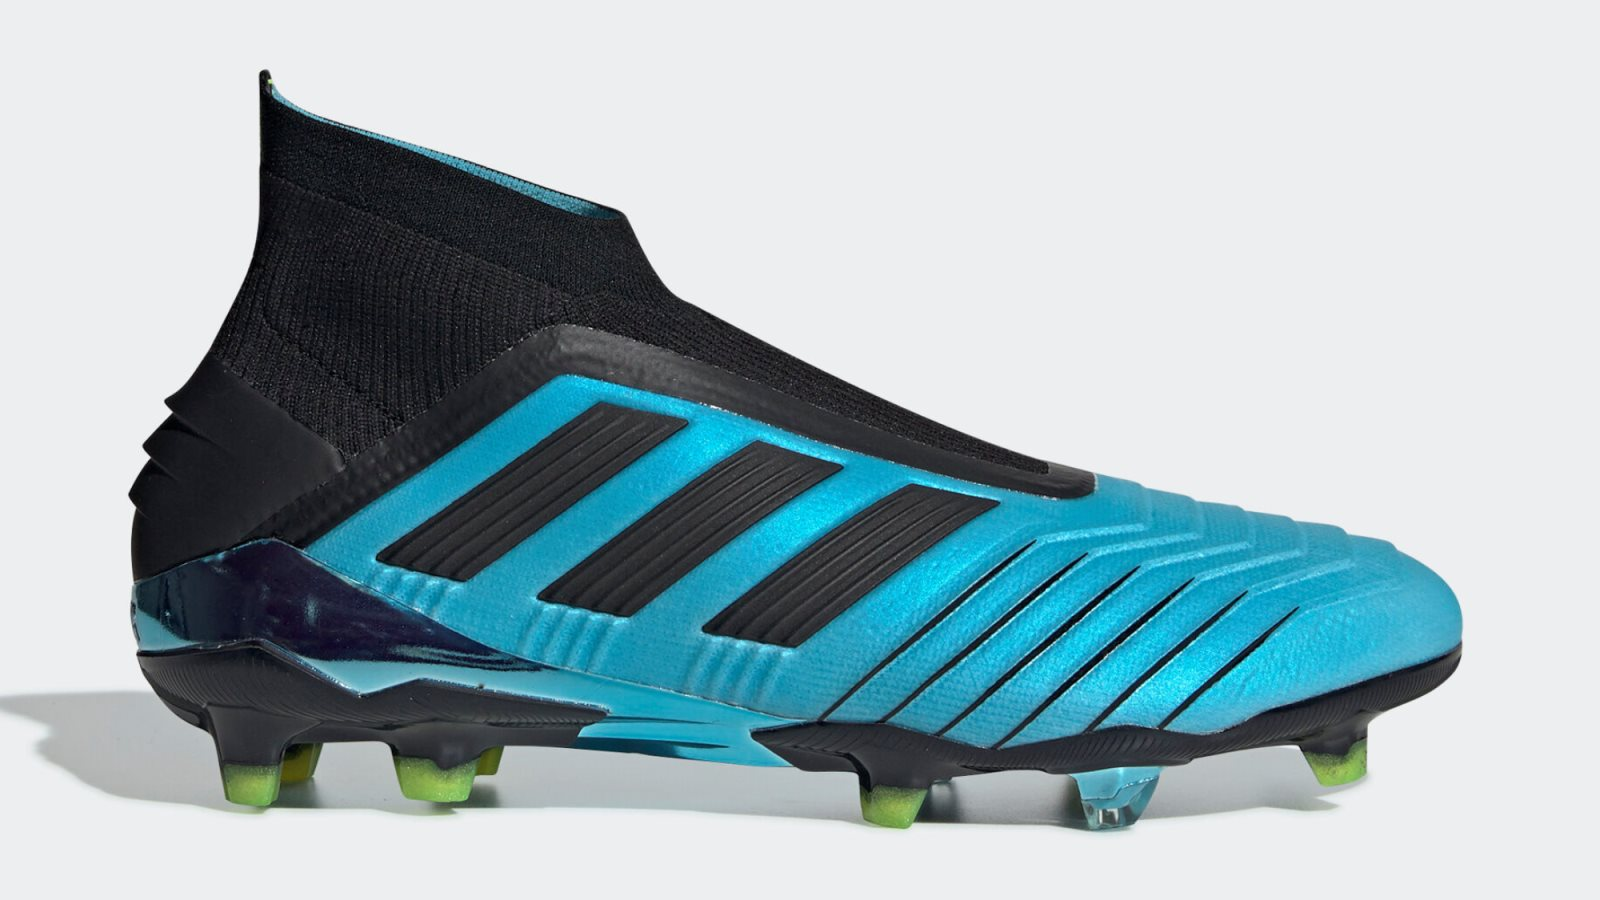 Image result for Black / Pink / Blue Adidas Predator 19+ Paul Pogba Season 6 2019-20 Boots Leaked